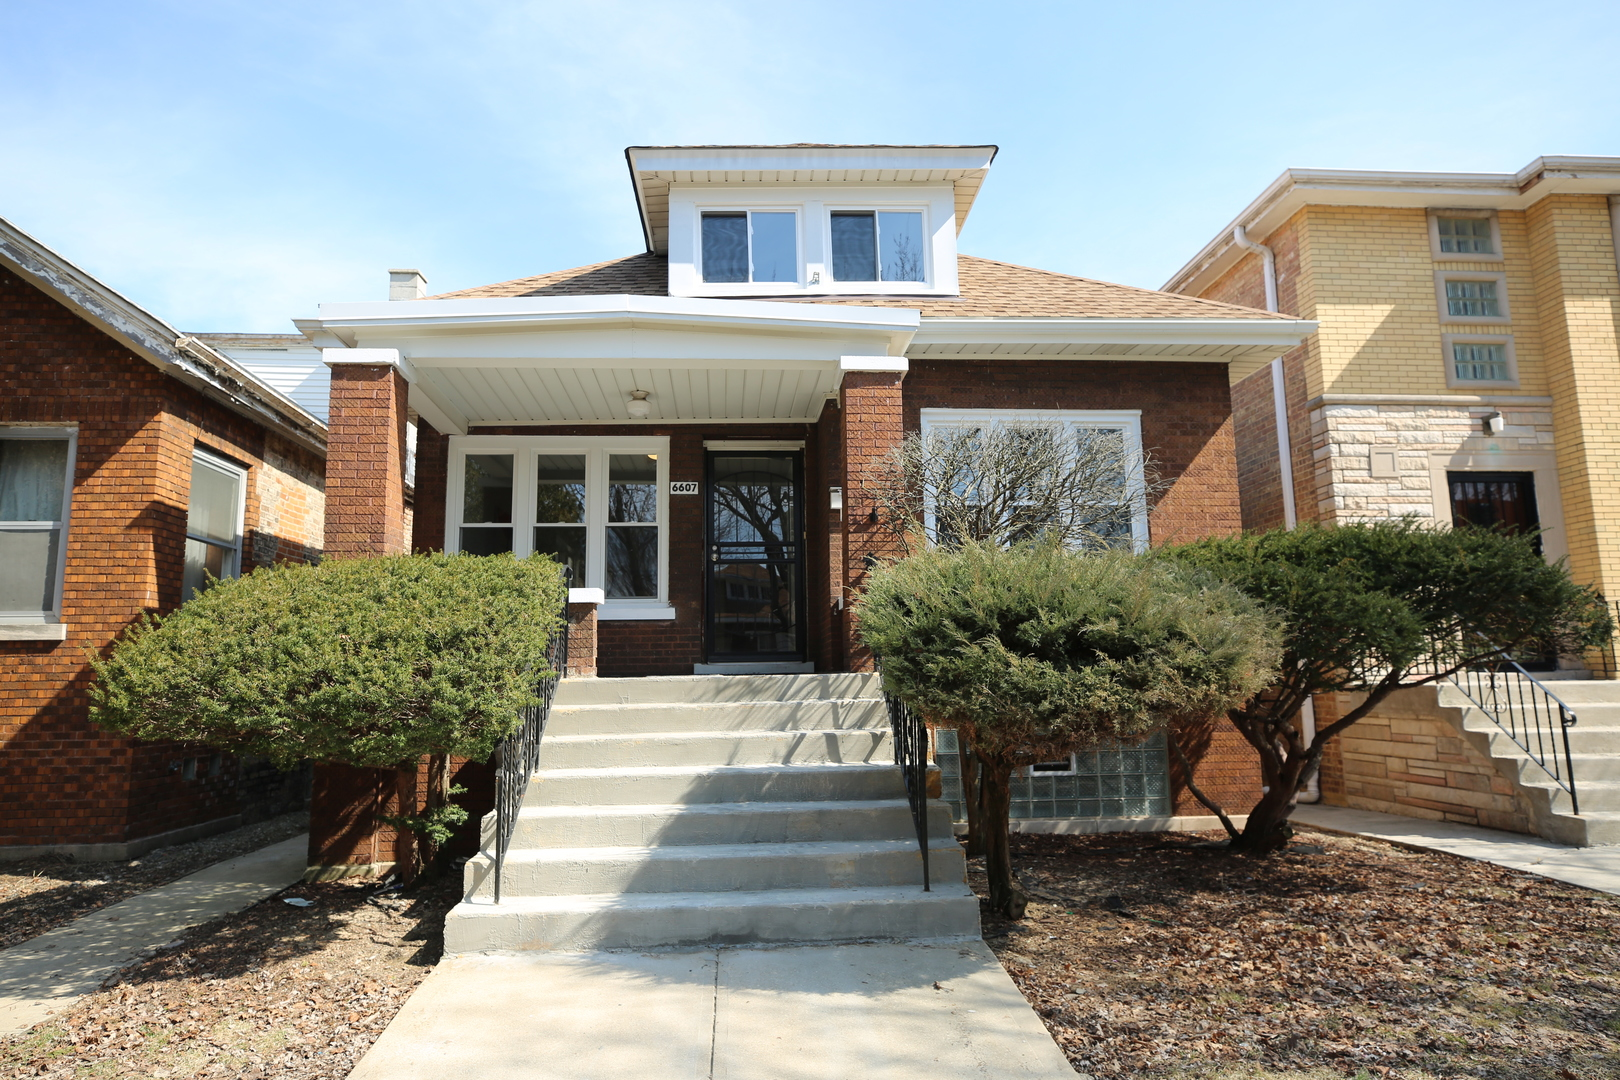 6607 SOUTH MAPLEWOOD AVENUE, CHICAGO, IL 60629